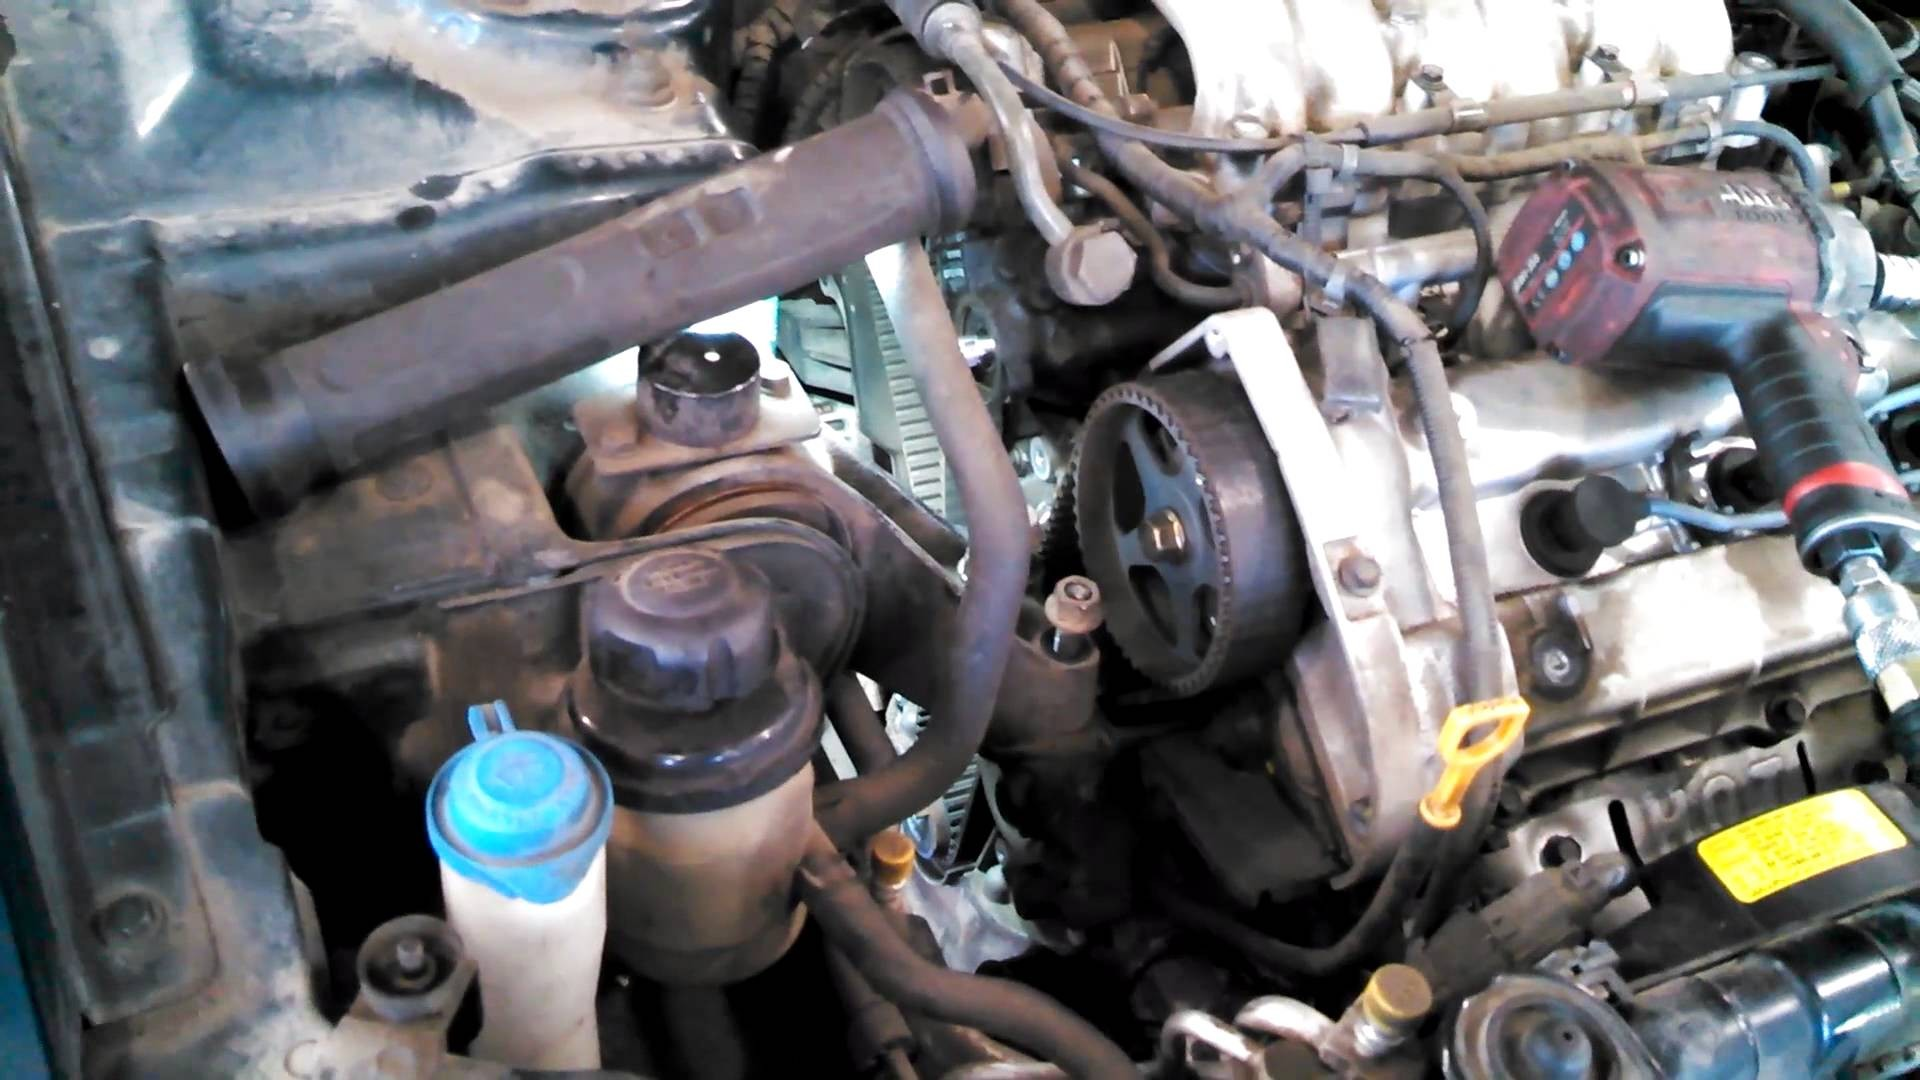 2004 Kia Amanti Engine Diagram 250 Ignition Wiring 2002 Rio Timing Belt Replacement Optima 2 7l 2001 2005 V6 Water